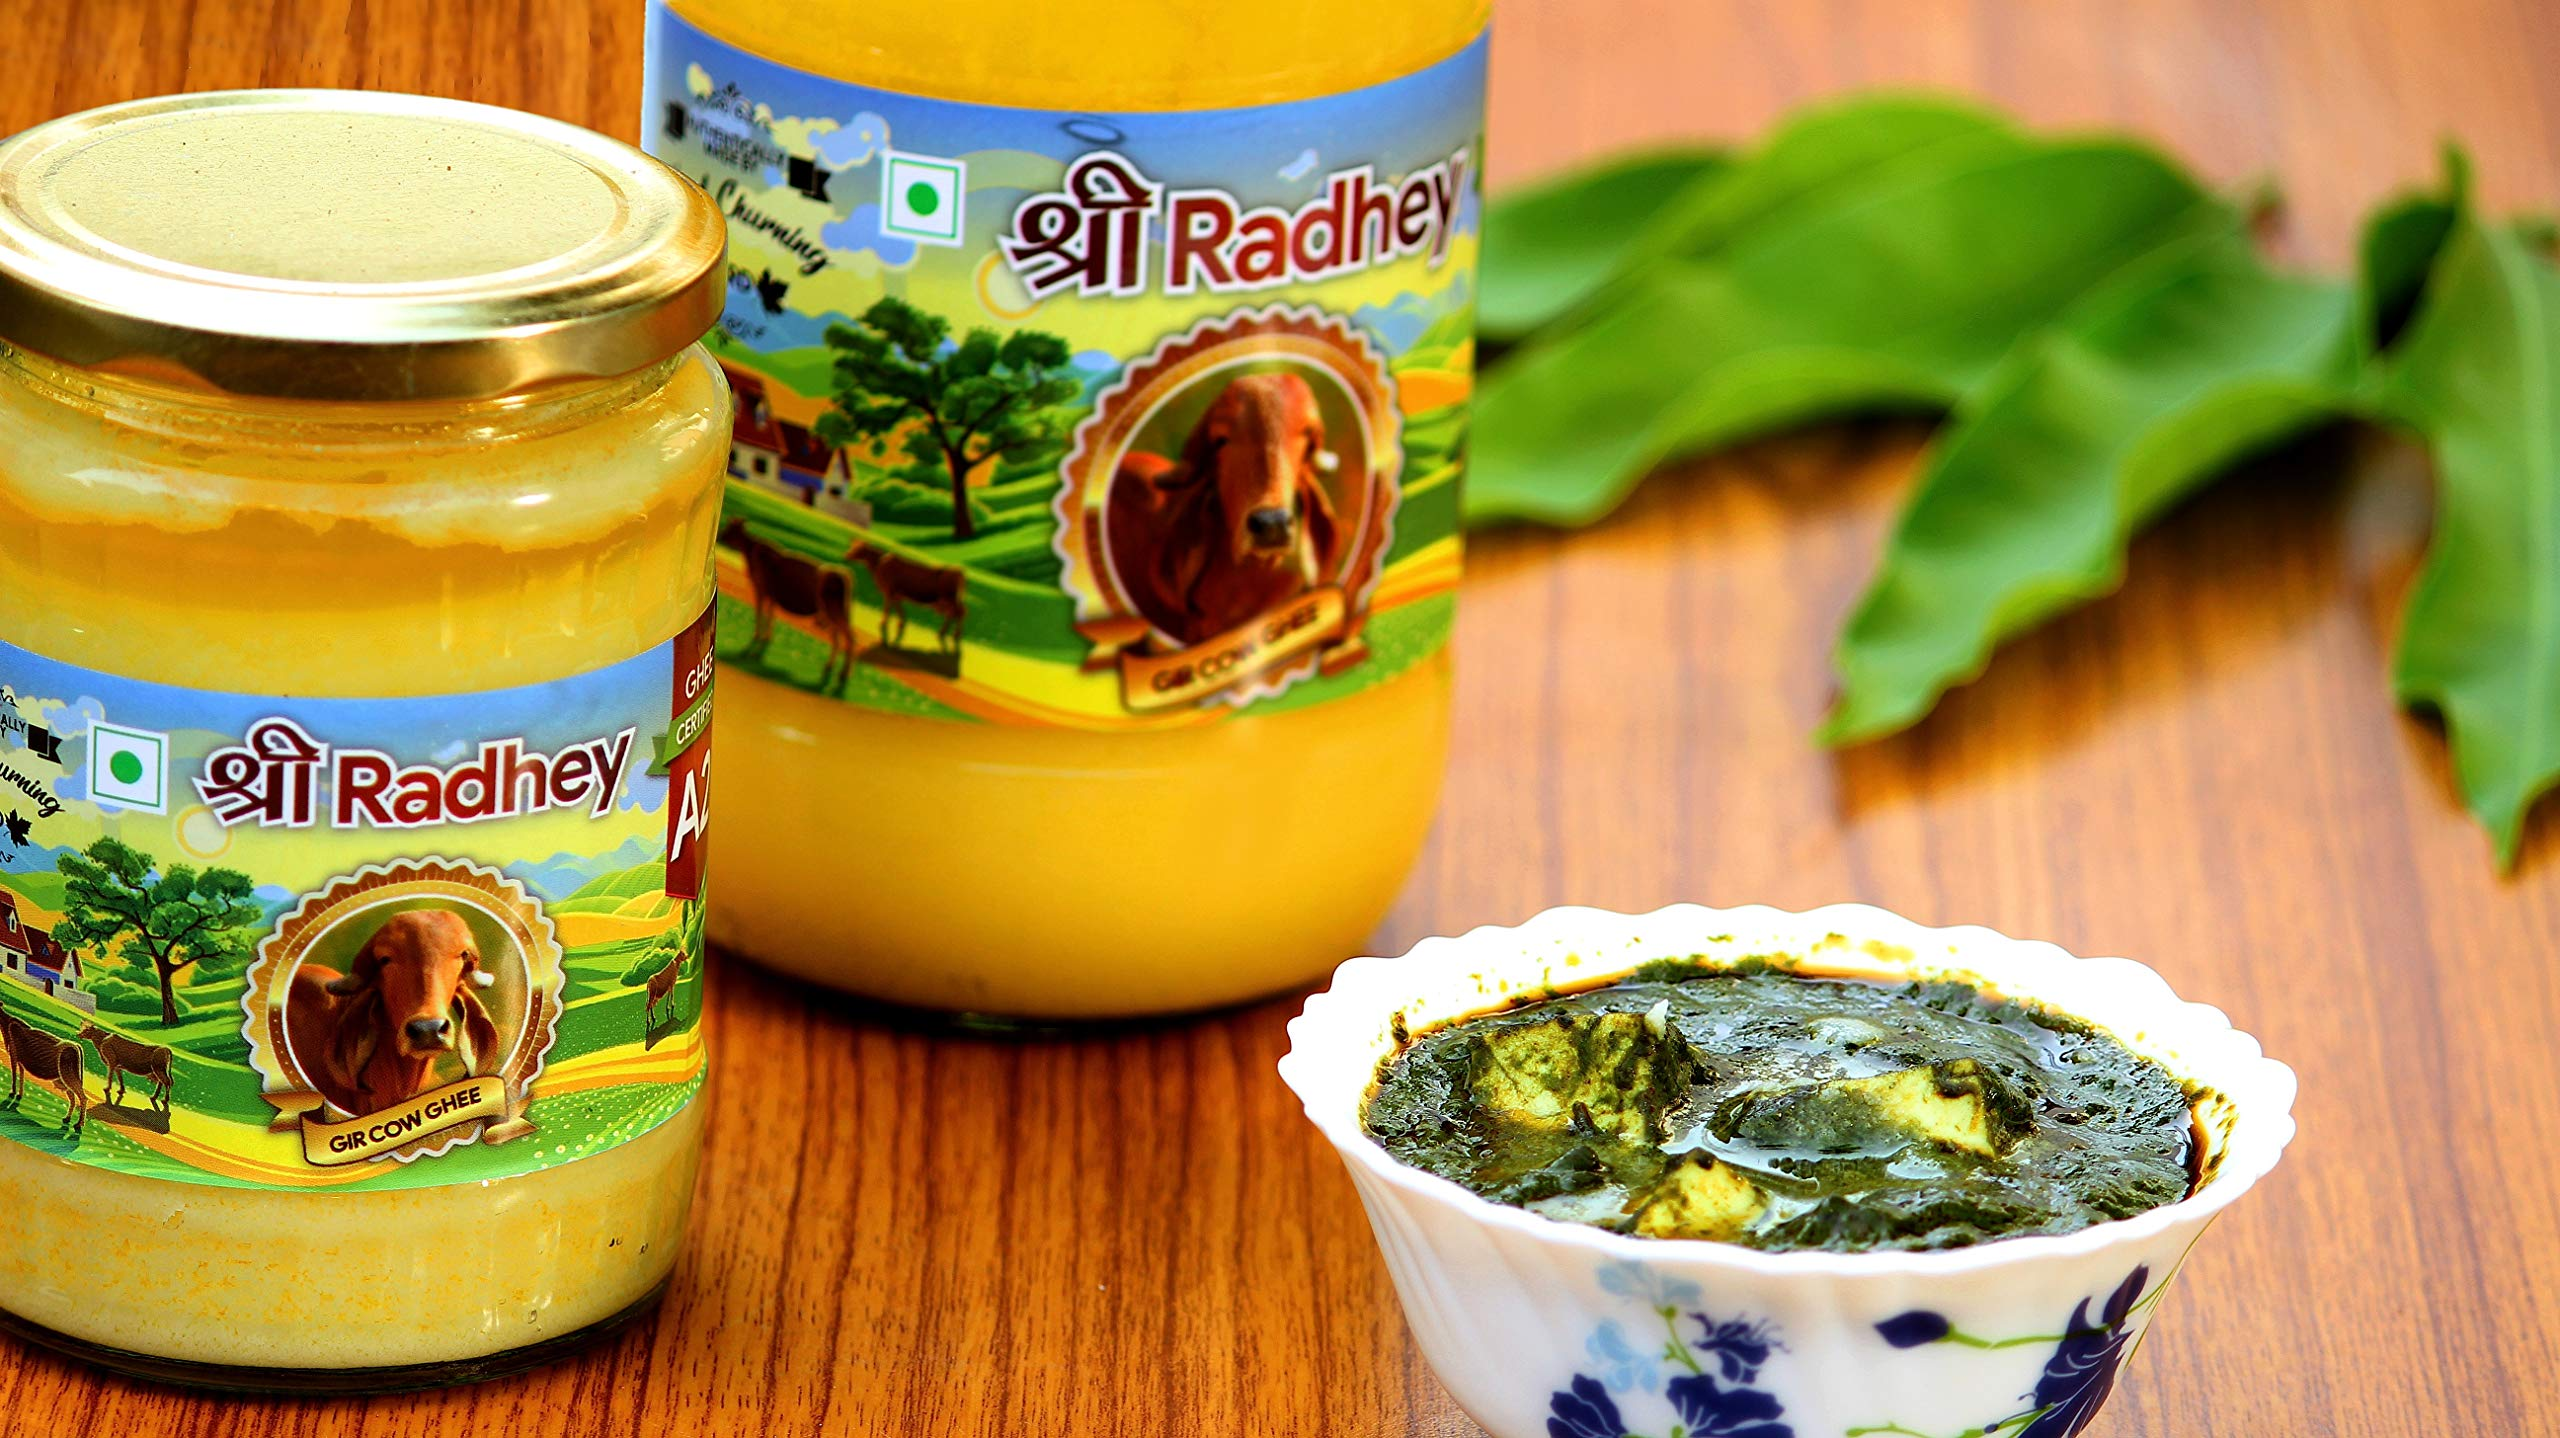 Shree Radhey Certified A2 Gir Cow Ghee - Gluten Free - (Traditionaly Hand Churned) (1000 ml X 2) by Shree Radhey (Image #8)